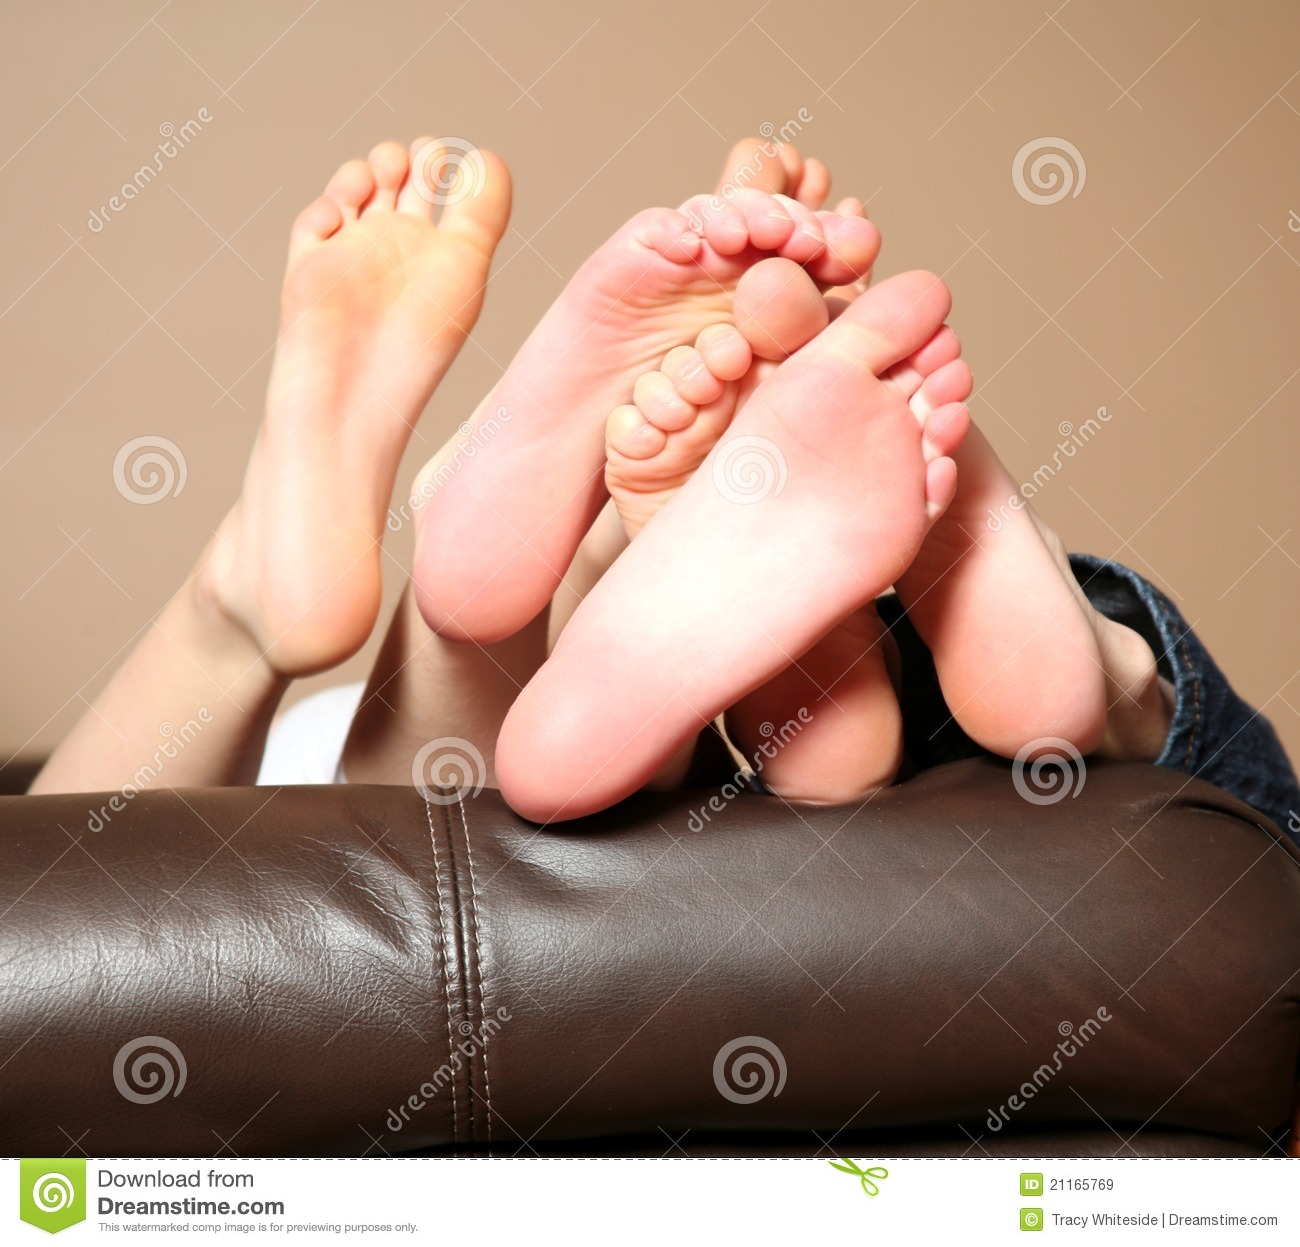 Much prompt ticklish bare feet soles tickled